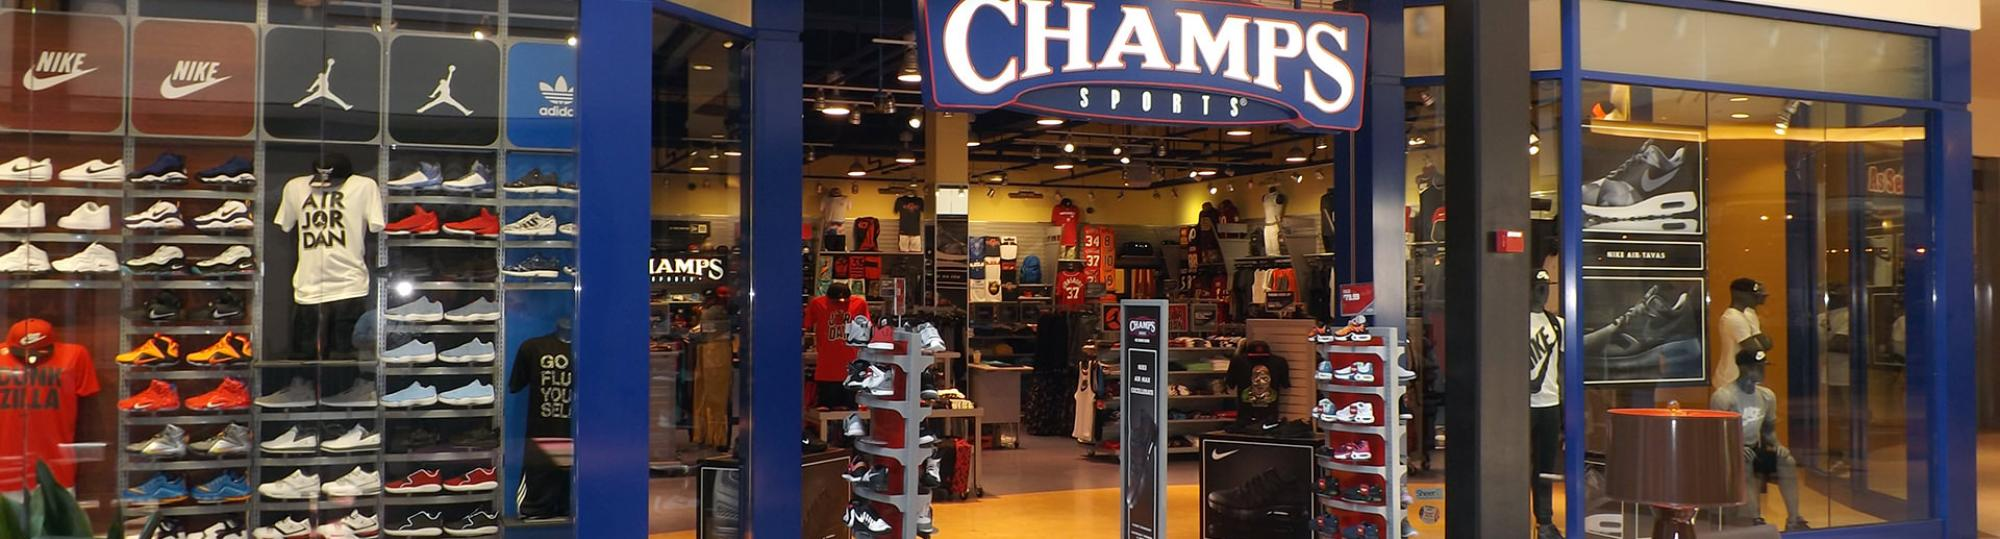 Champs Sports Military Discount with Veterans Advantage